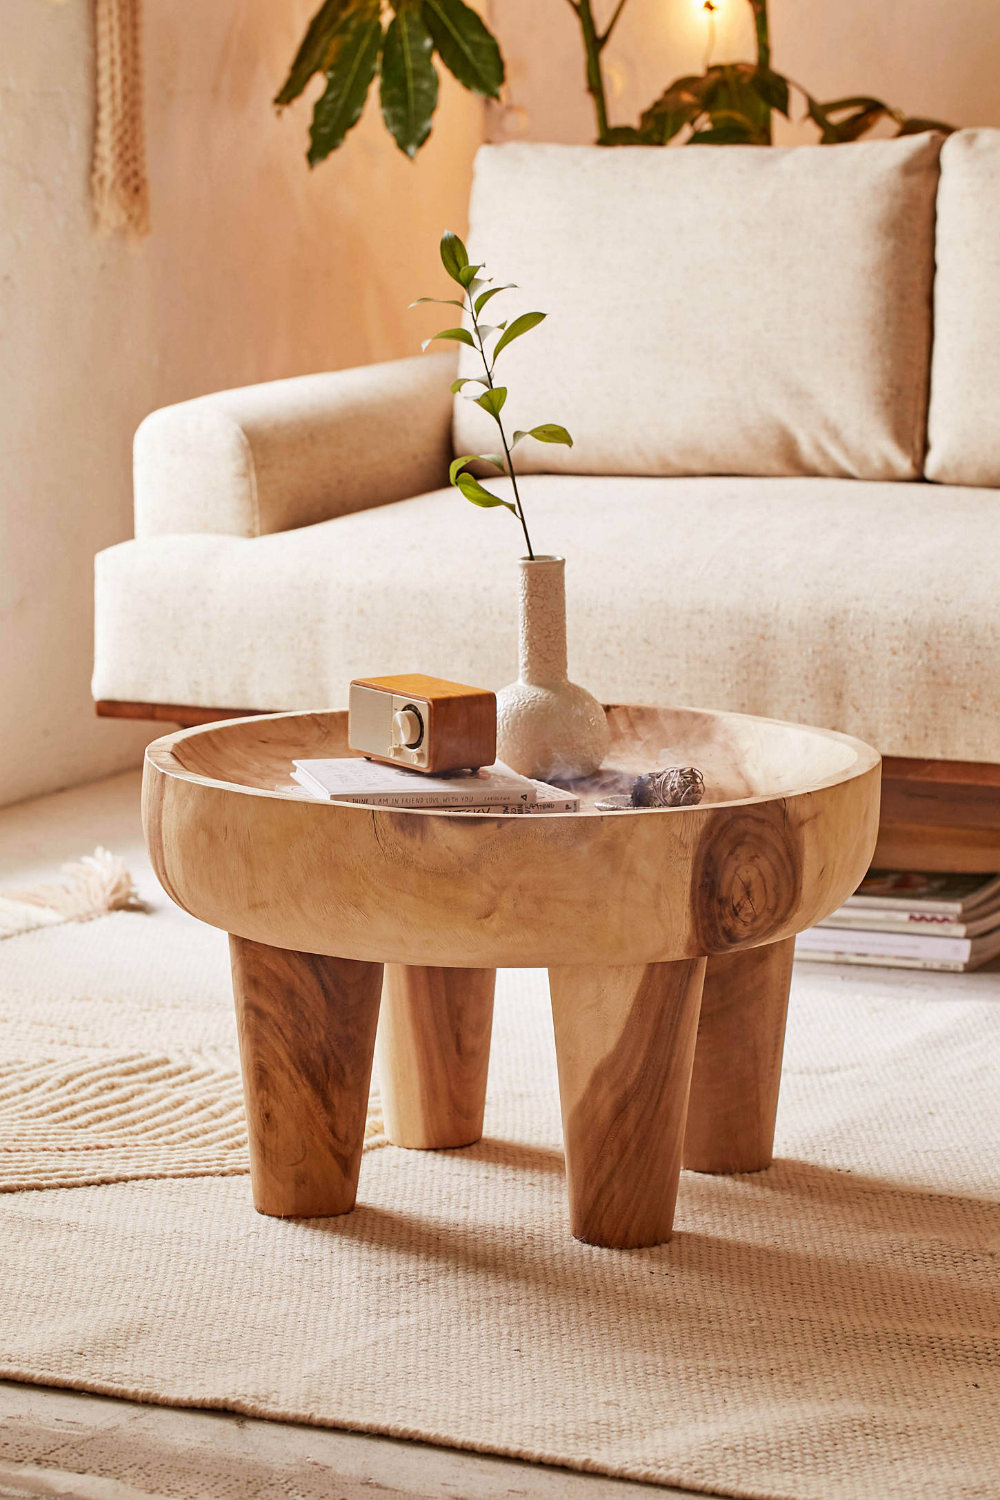 Kia Round Side Table Round wood side table, Round side